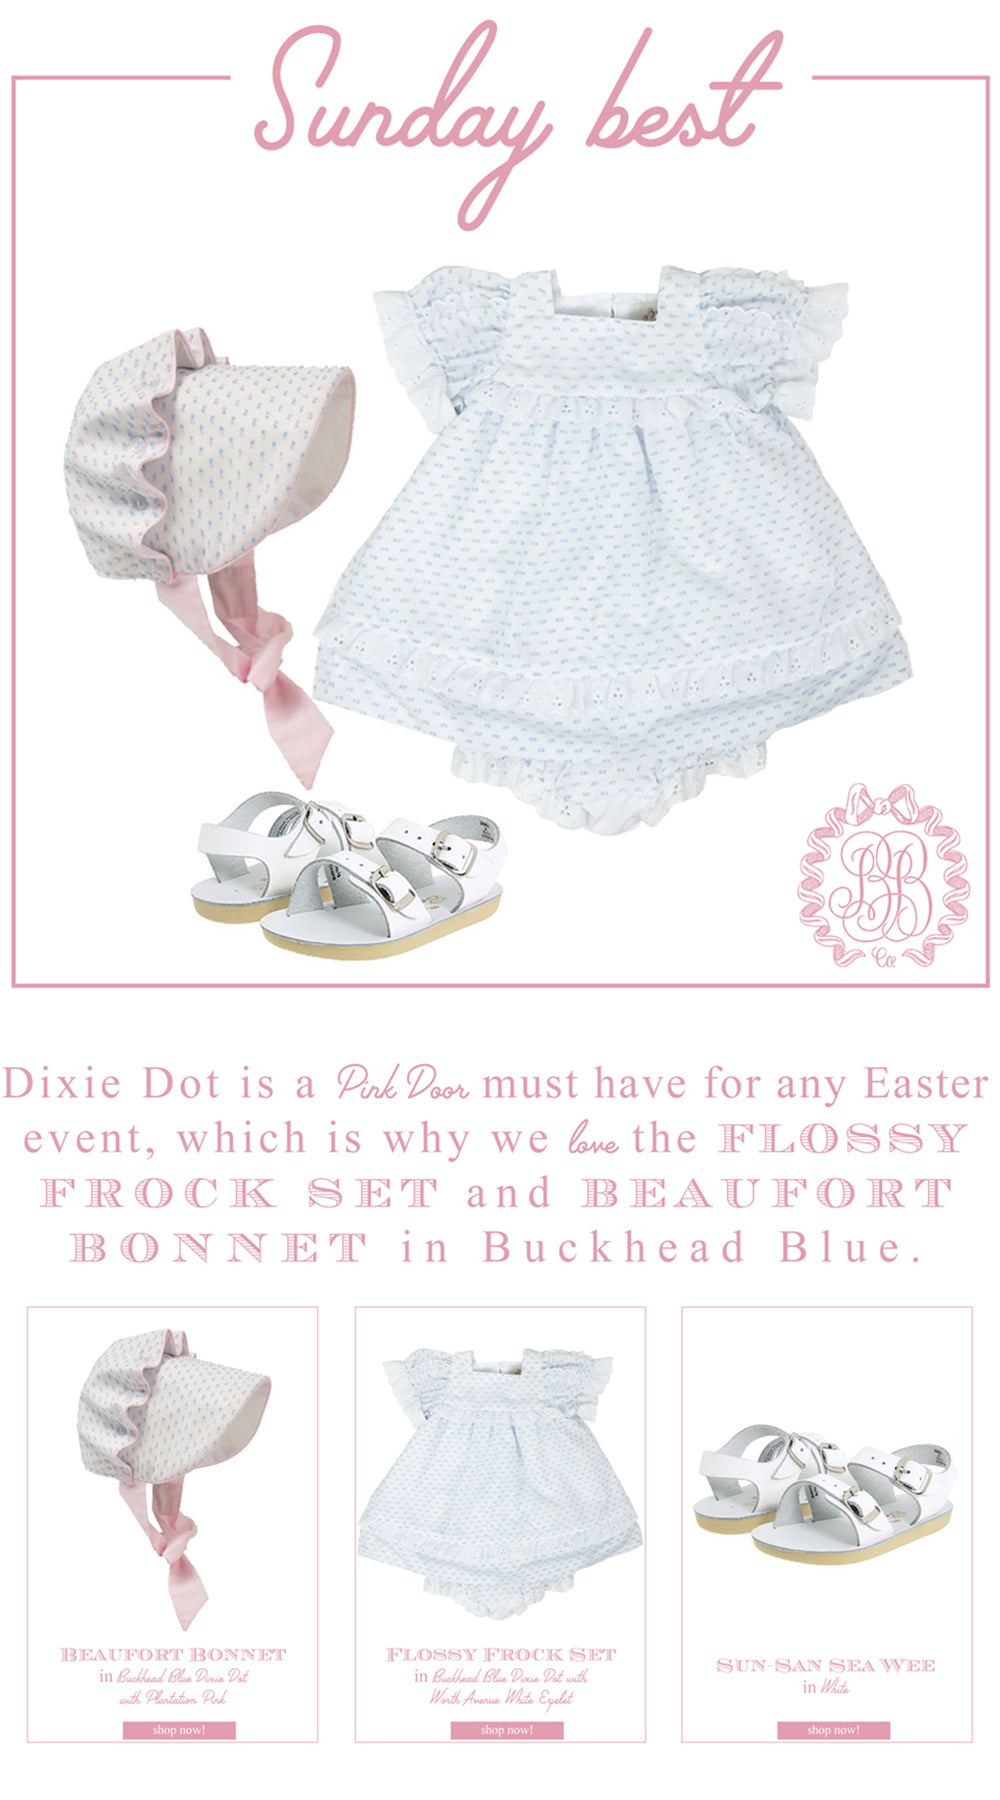 Easter Looks for Little Ladies: Flossy Frock Set with Beaufort Bonnet